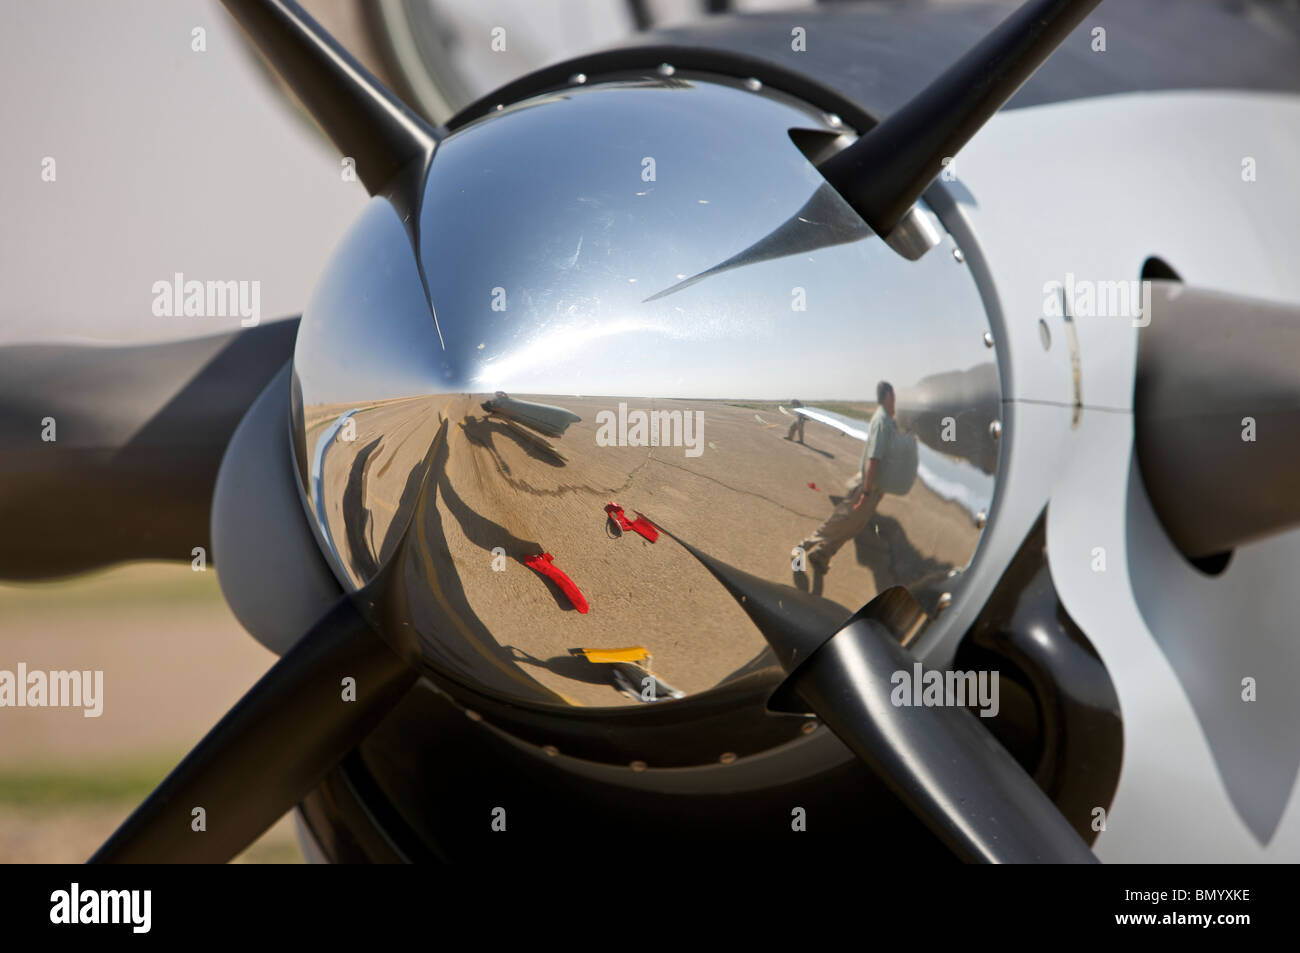 Close-up view of the propeller of an Iraqi Air Force T-6 Texan trainer aircraft. - Stock Image